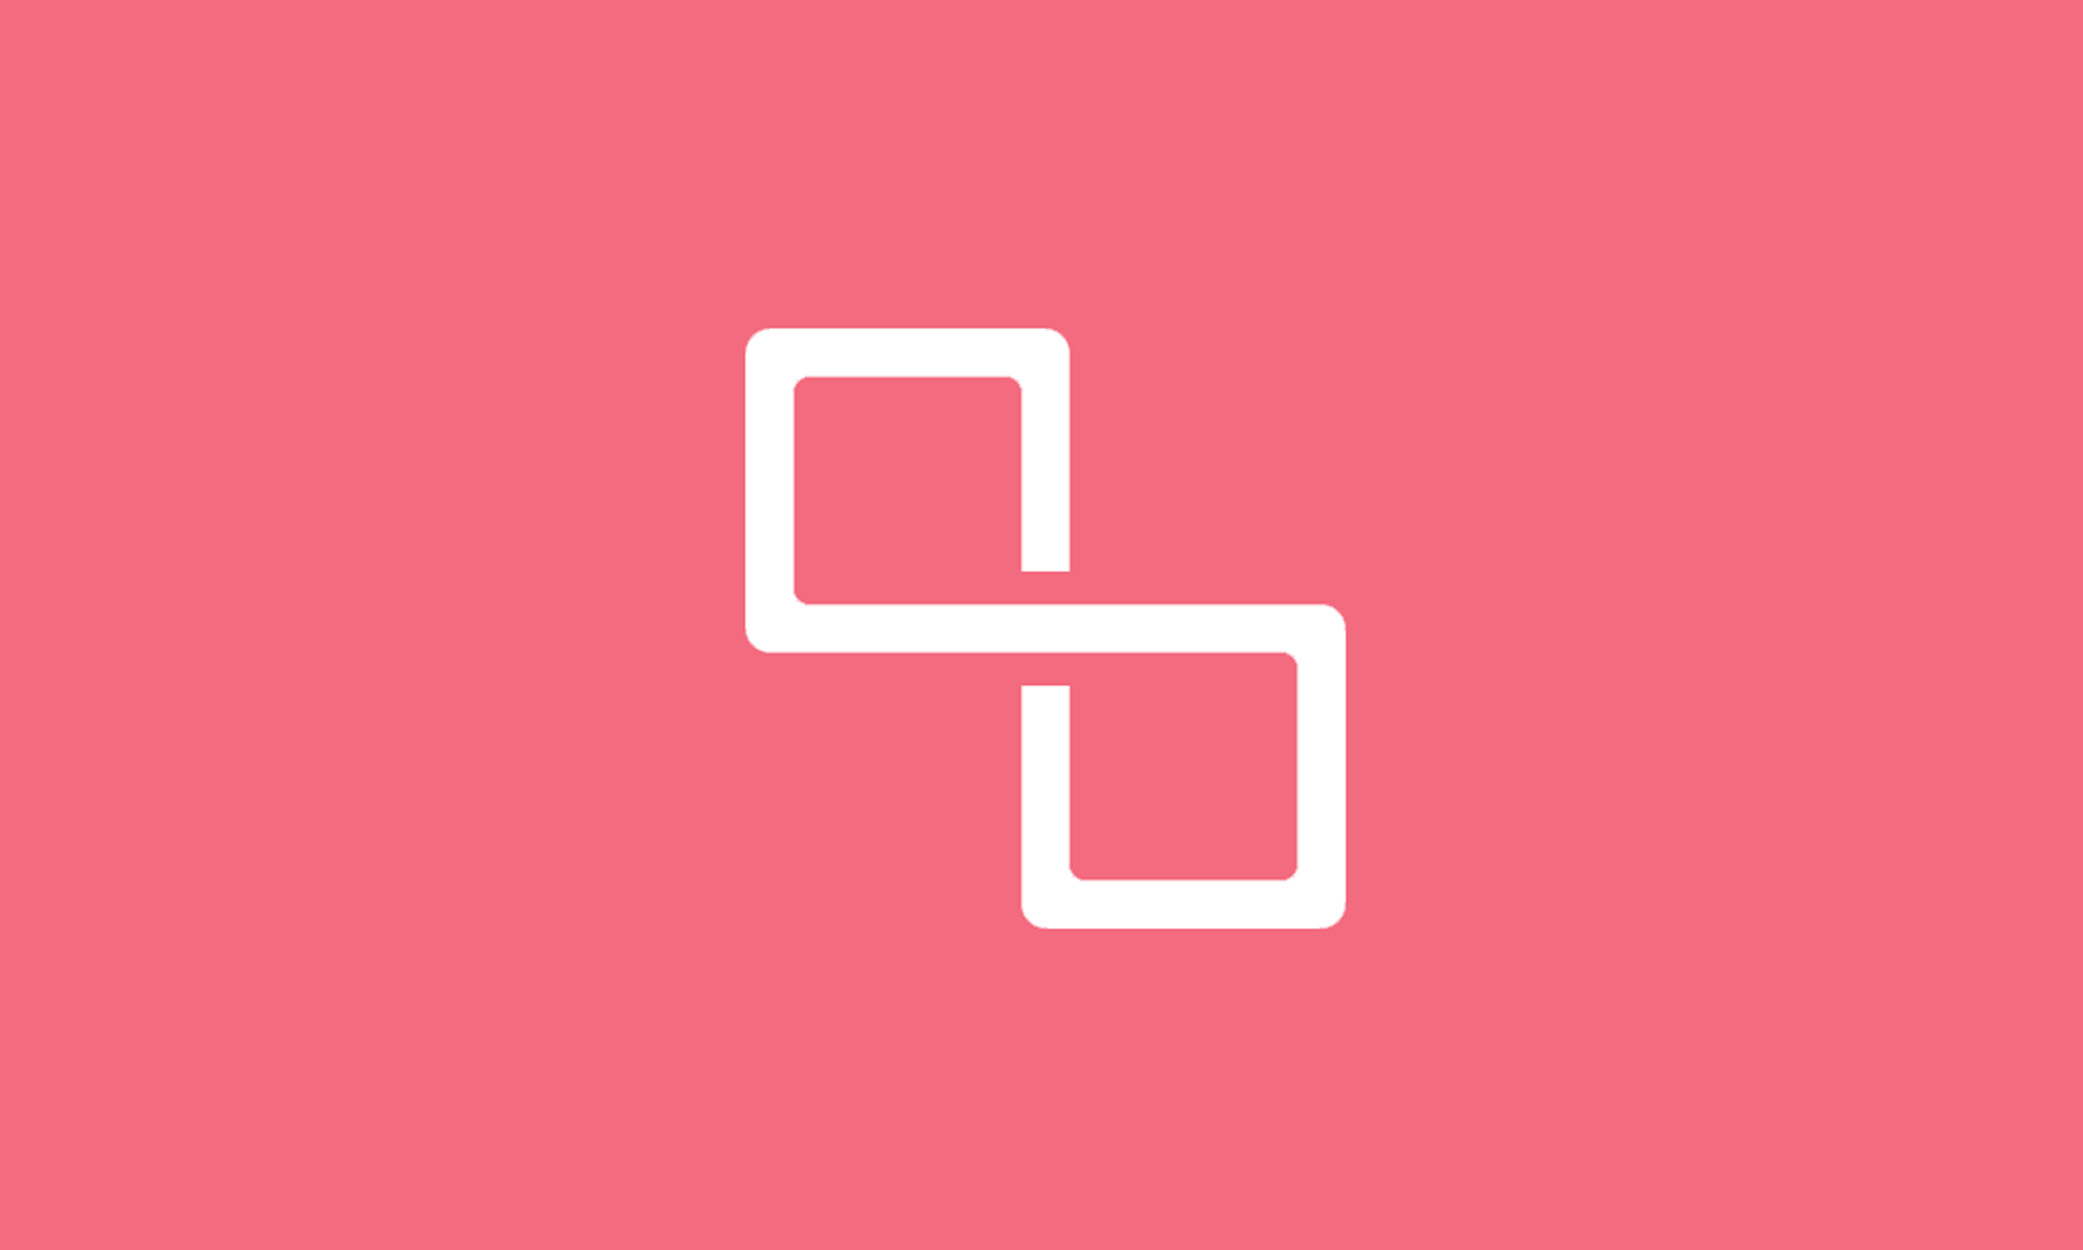 Open-sourcing Litho, a declarative UI framework for Android